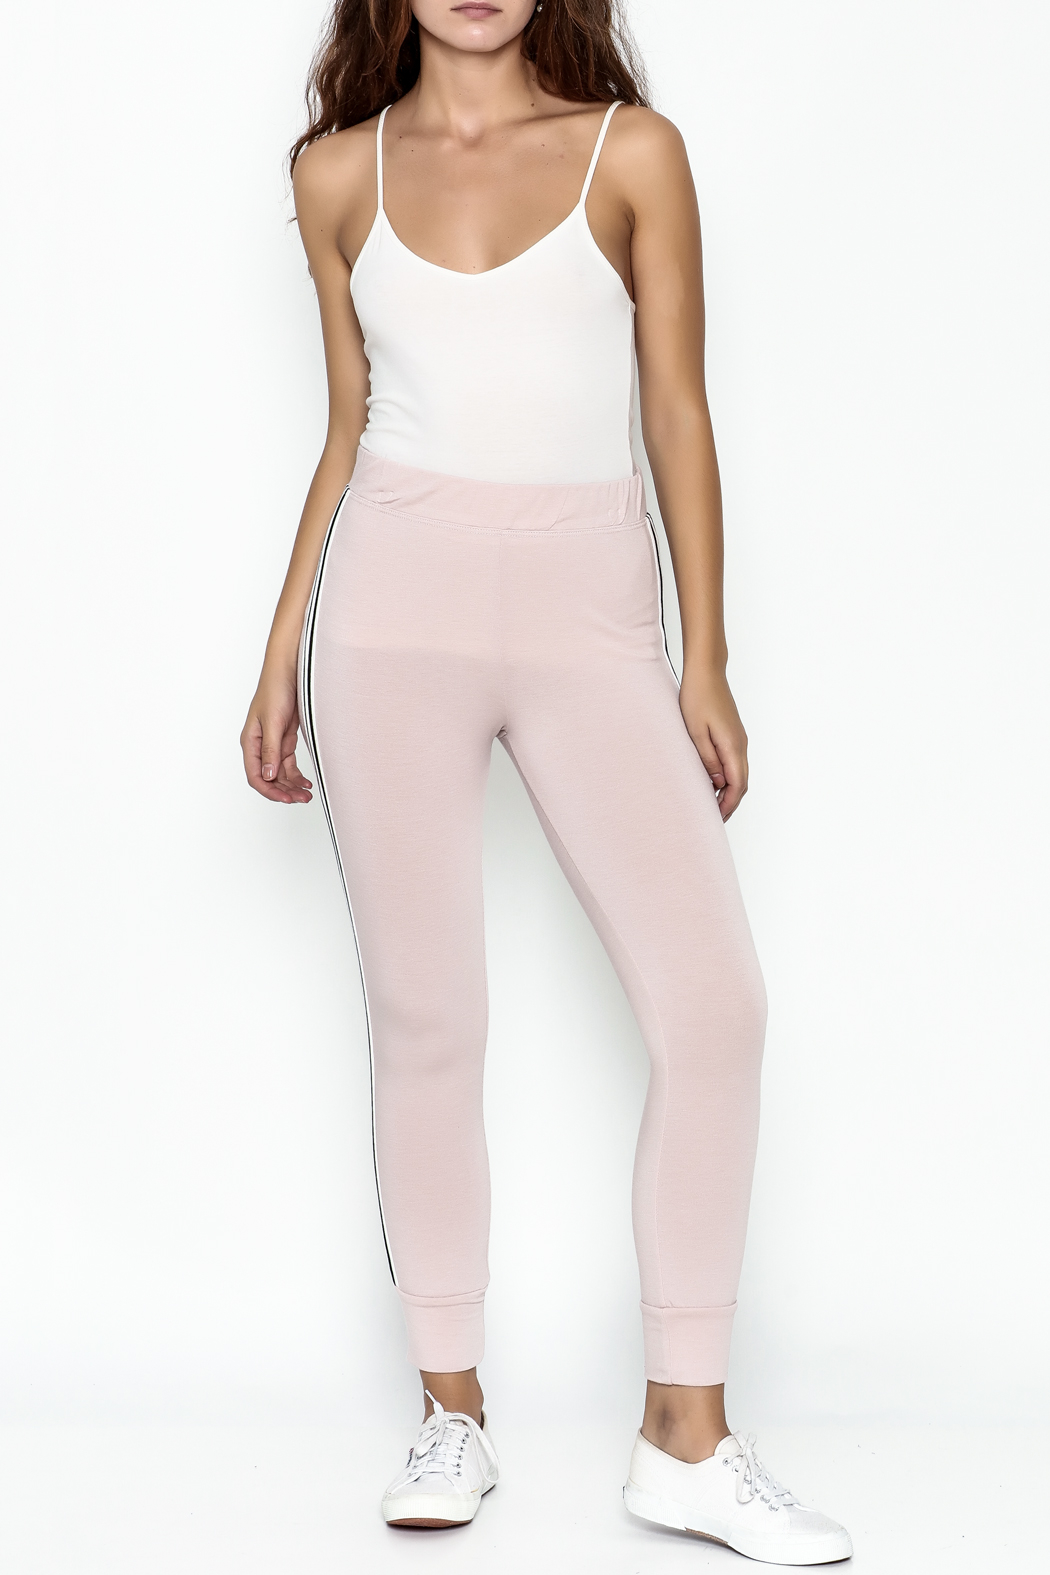 Happy Days USA Millennial Pink Jogger Pants - Side Cropped Image